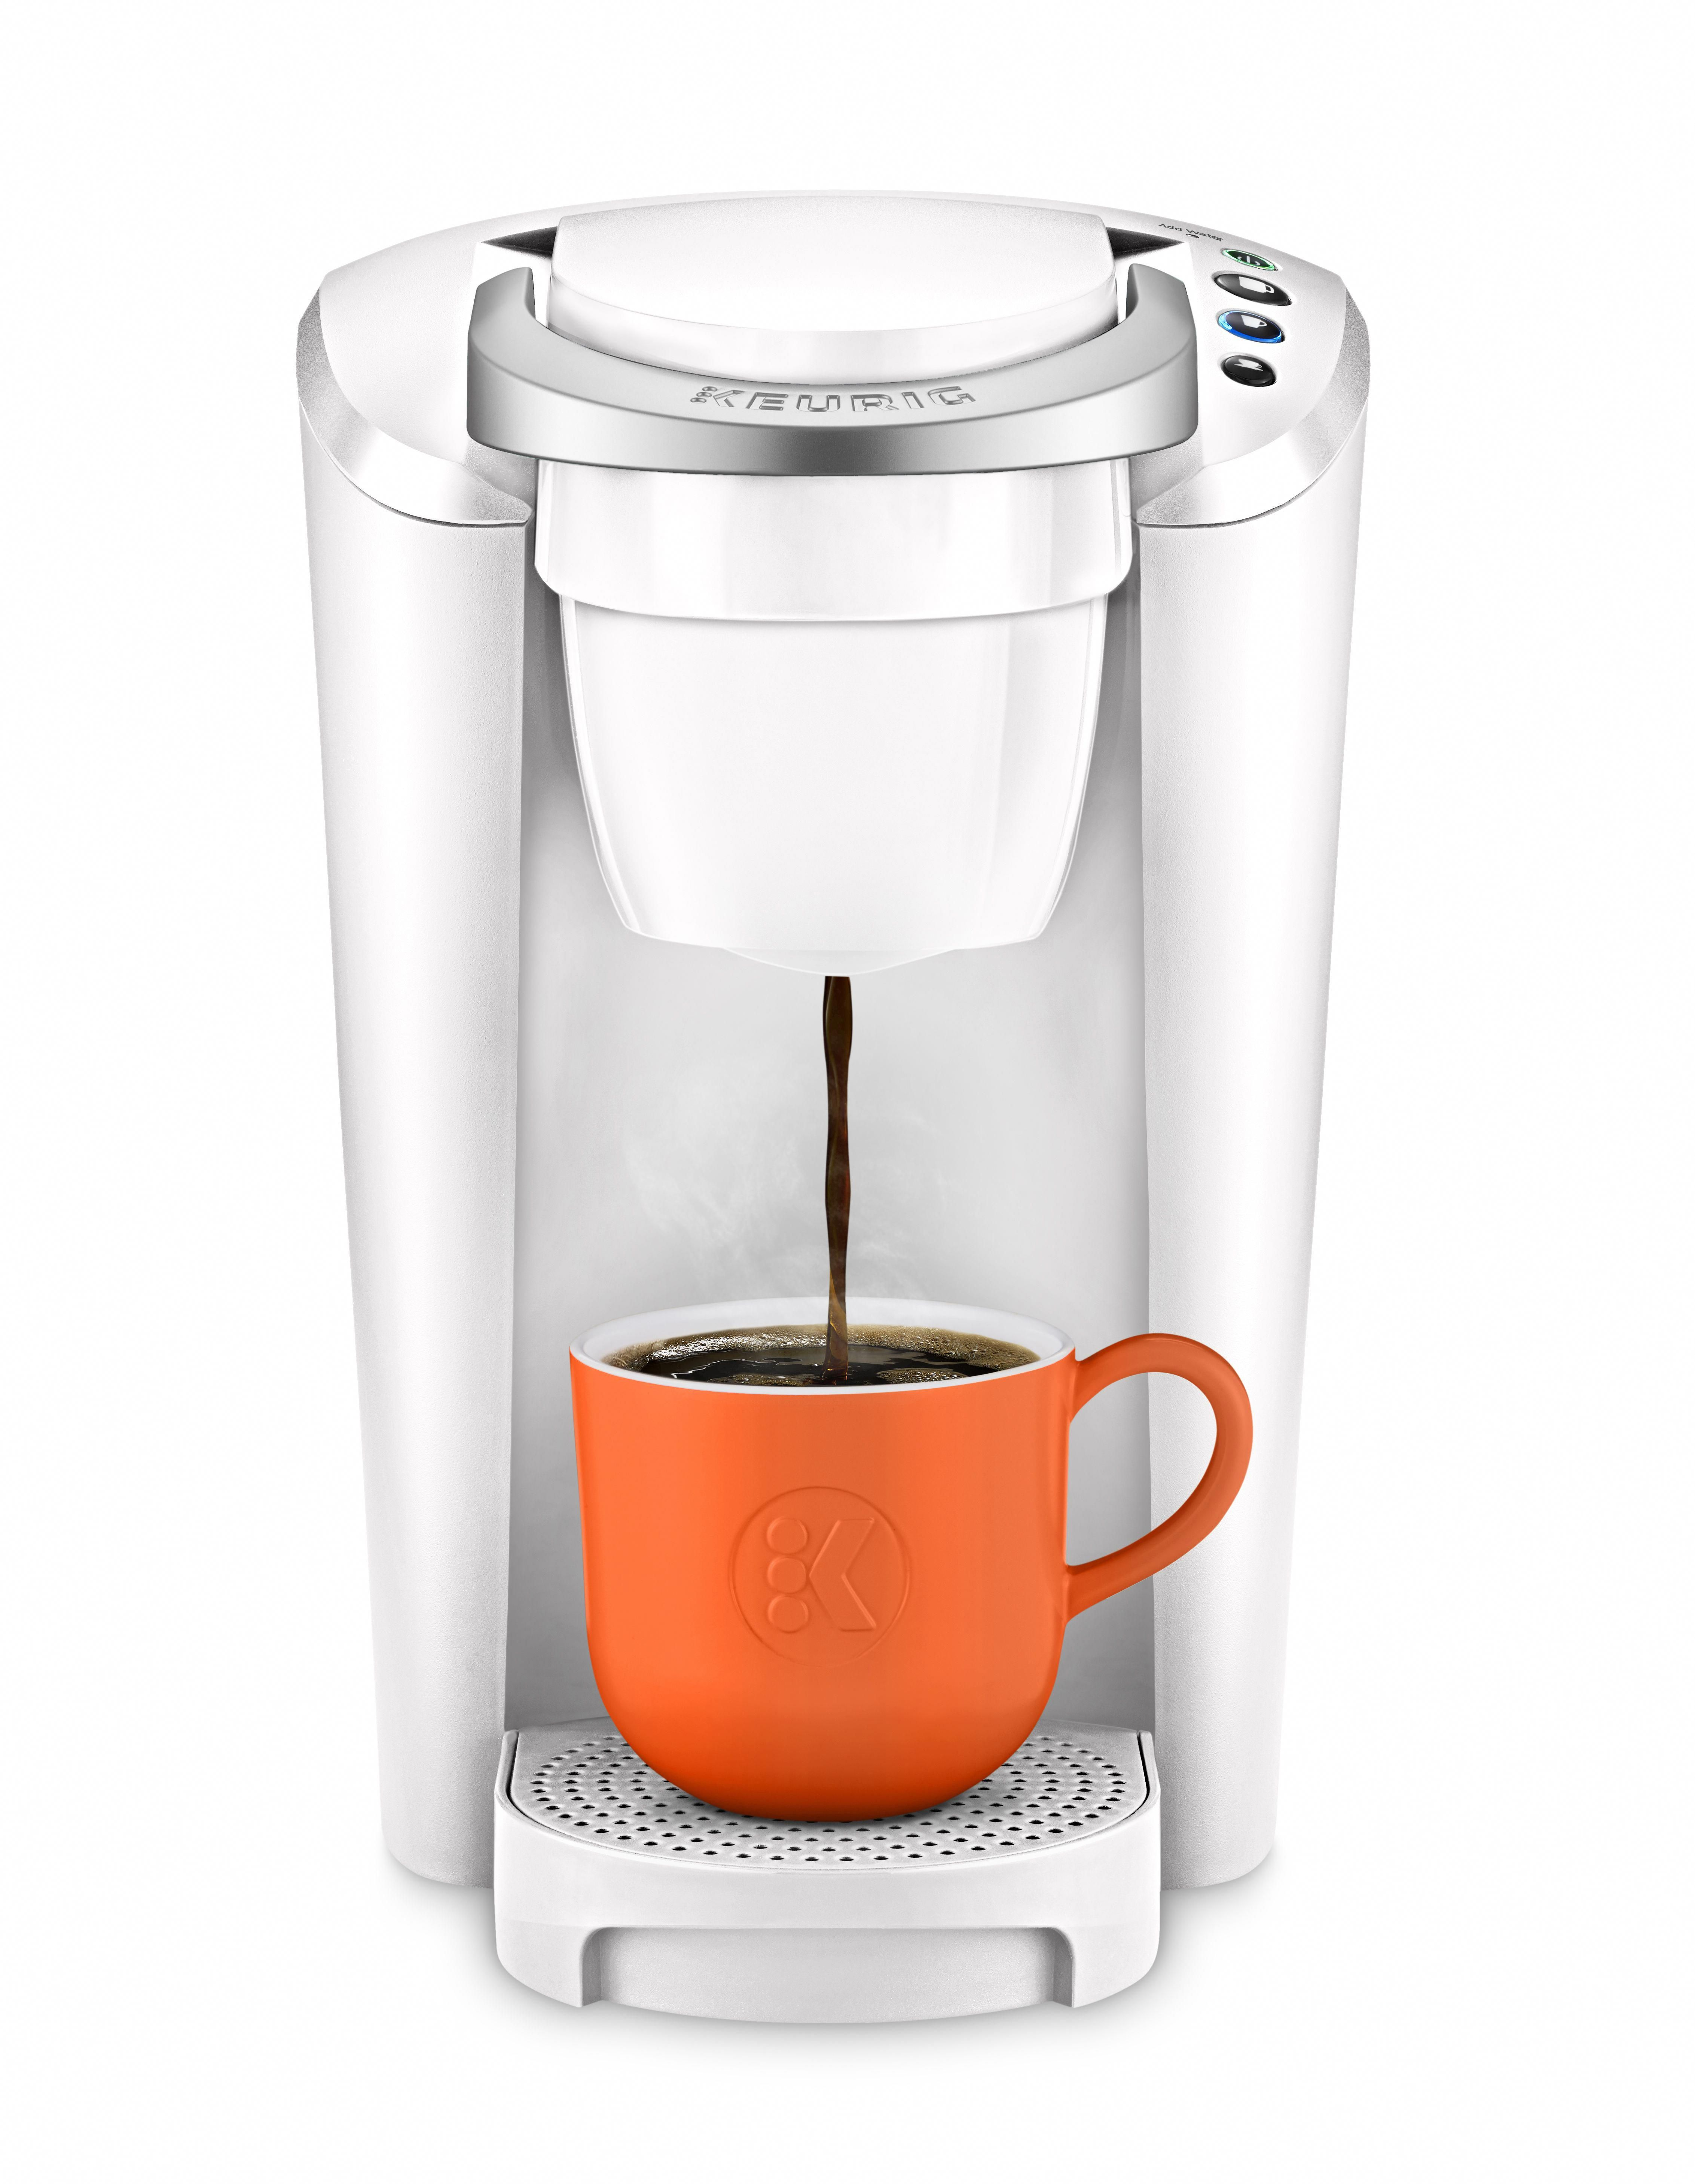 26 Superb Coffee Maker Ninja Hot And Cold in 2020